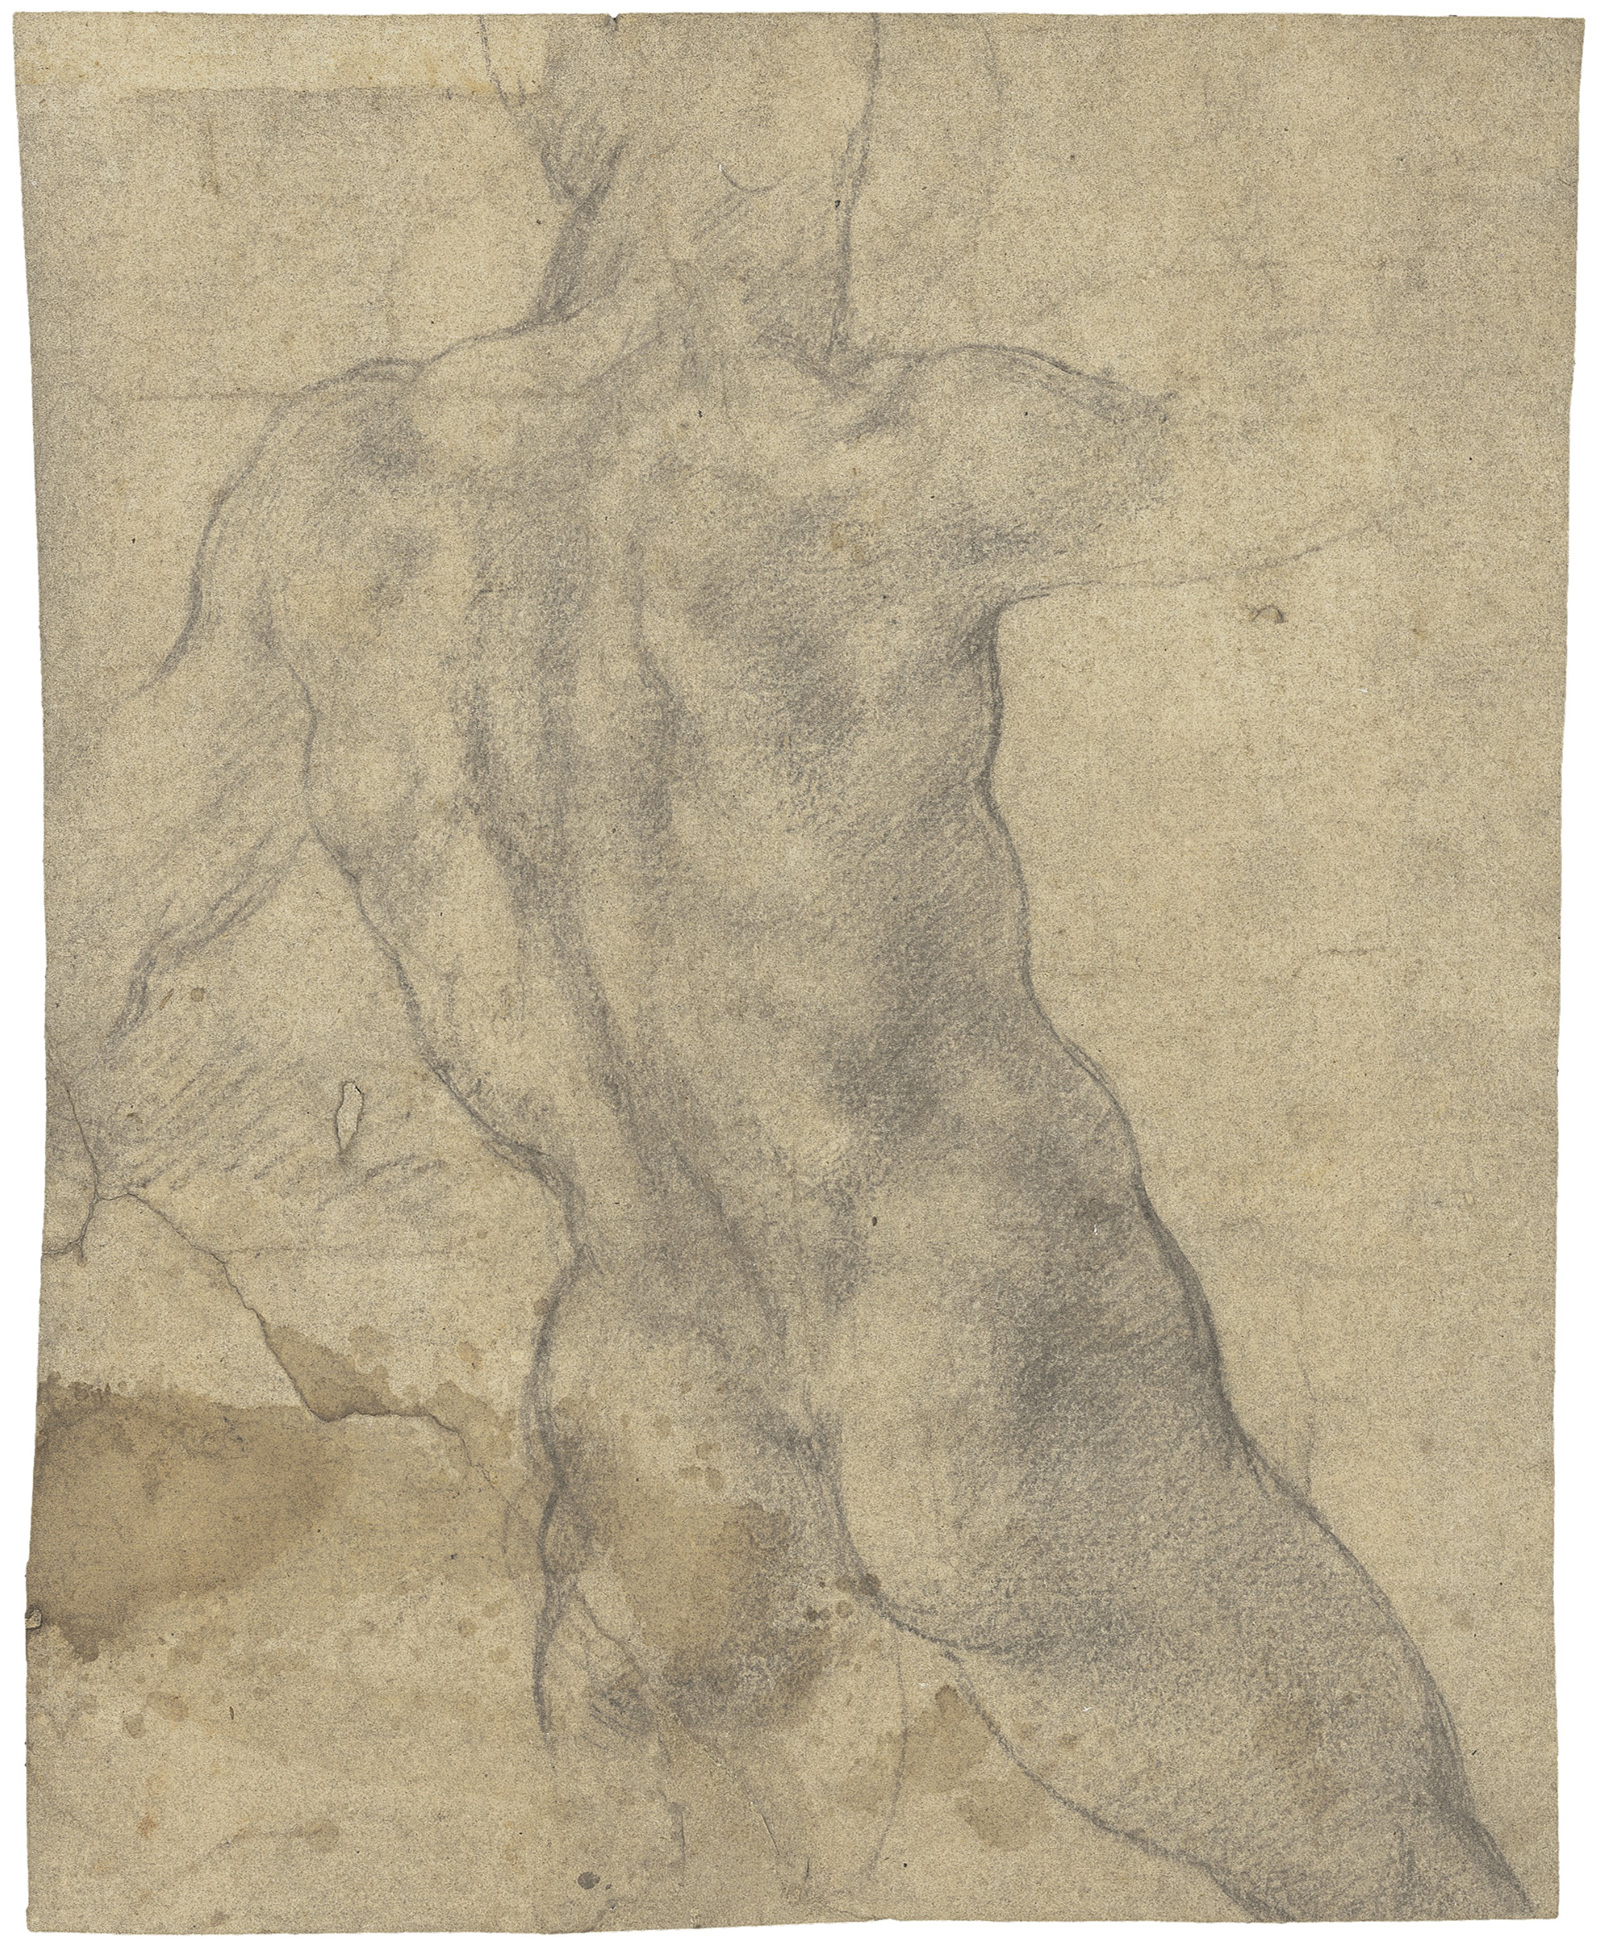 Unique Chance to Get Michelangelo's Original Rare Sketch